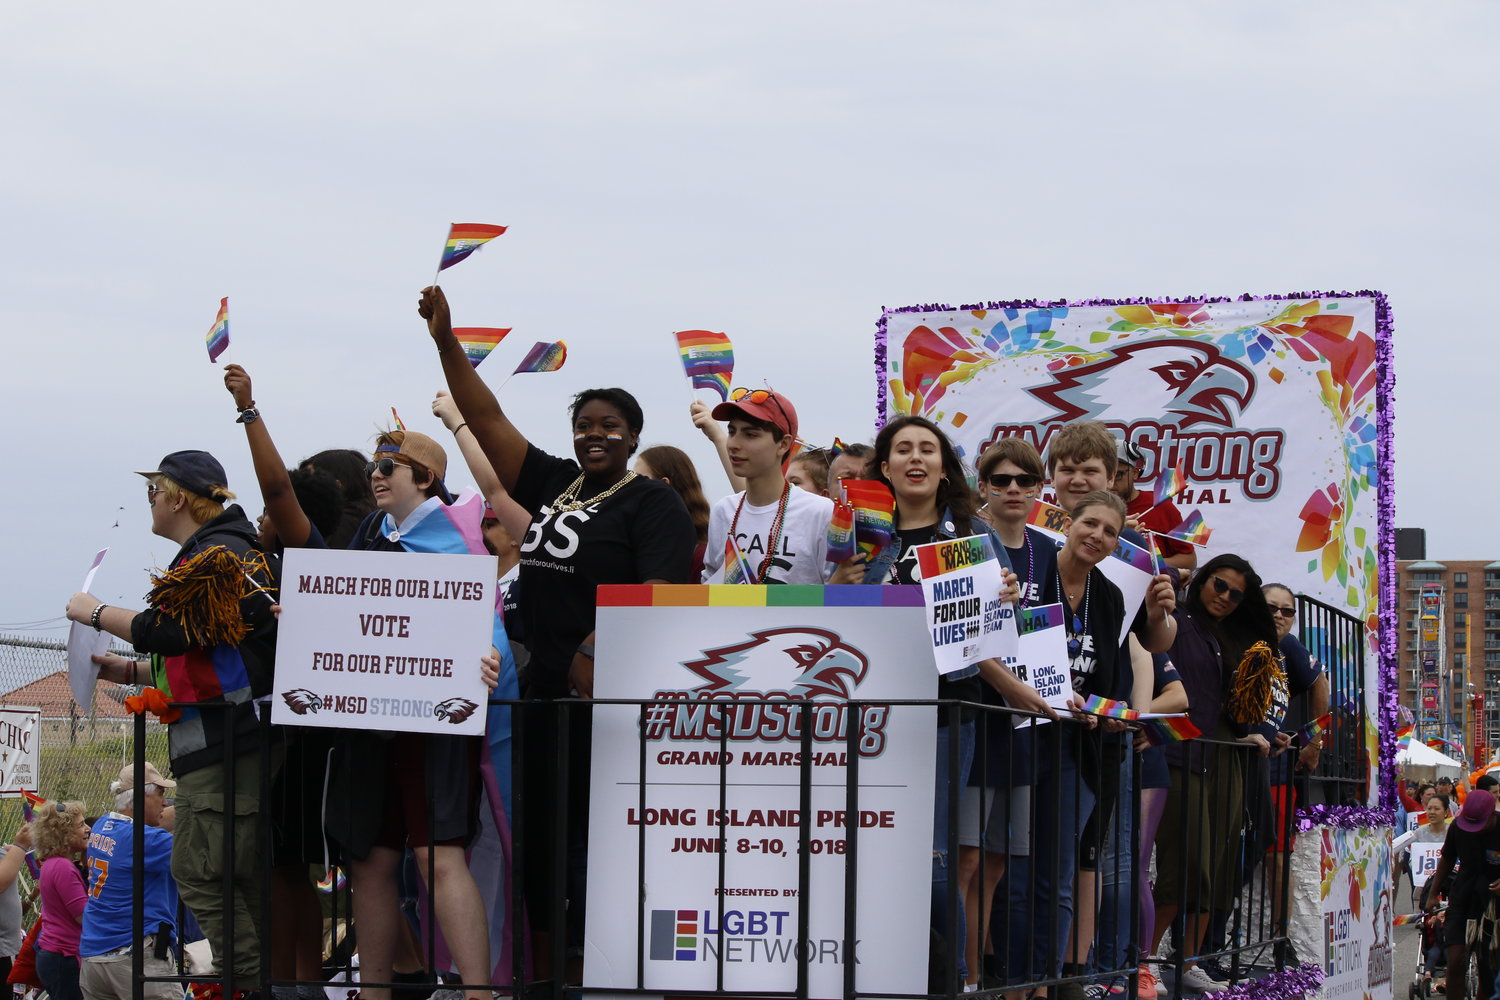 About 7,000 people took part in last year's Pride Parade, including 25 survivors of the shooting at Marjory Stoneman Douglas High School in Parkland, Fla., who served as grand marshals in honor of Long Island native Scott Beigel, a teacher at the school who died saving his students.